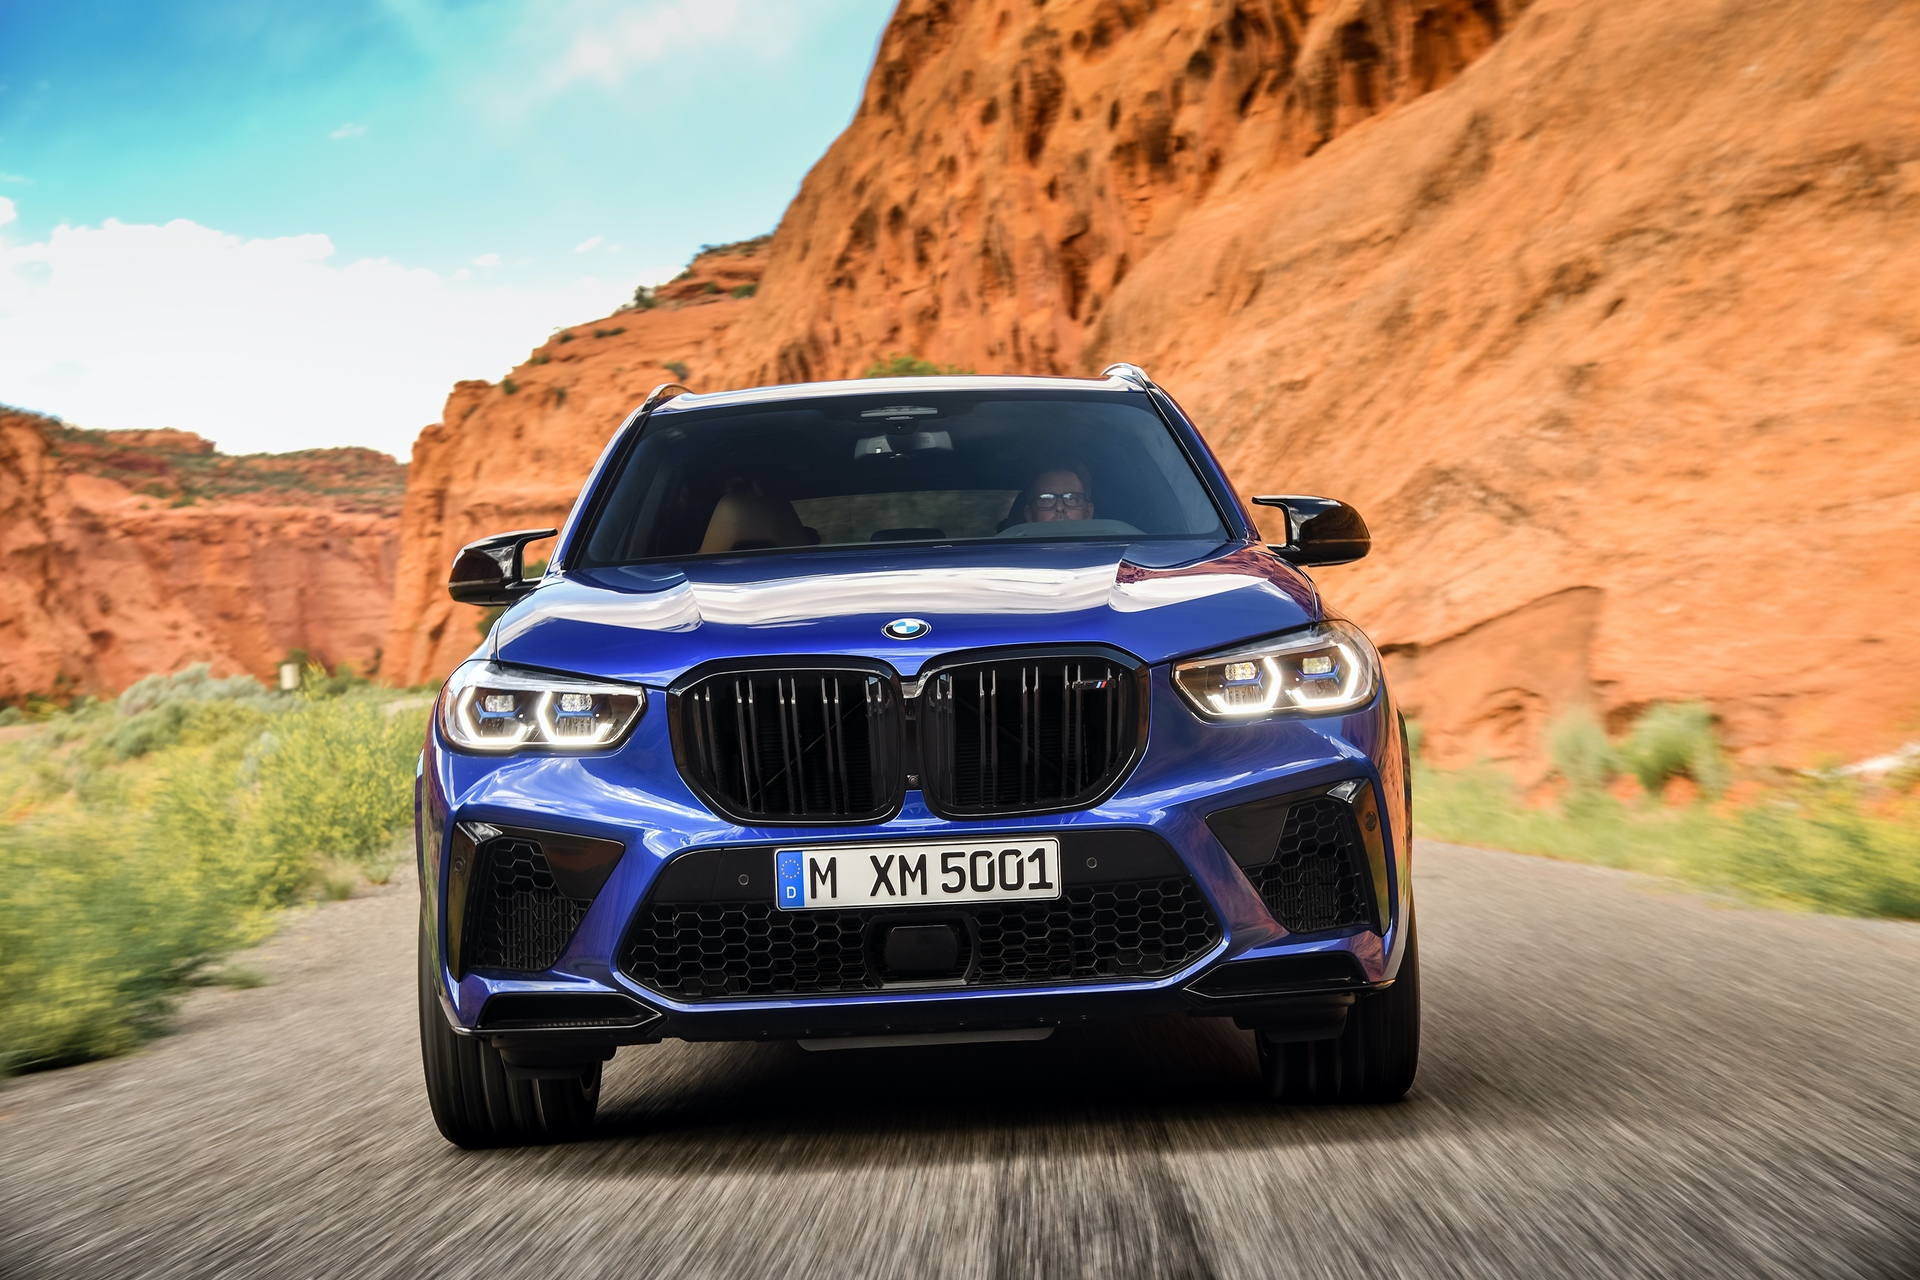 VIDEO: A story of the BMW M2 CS and BMW X5 M development